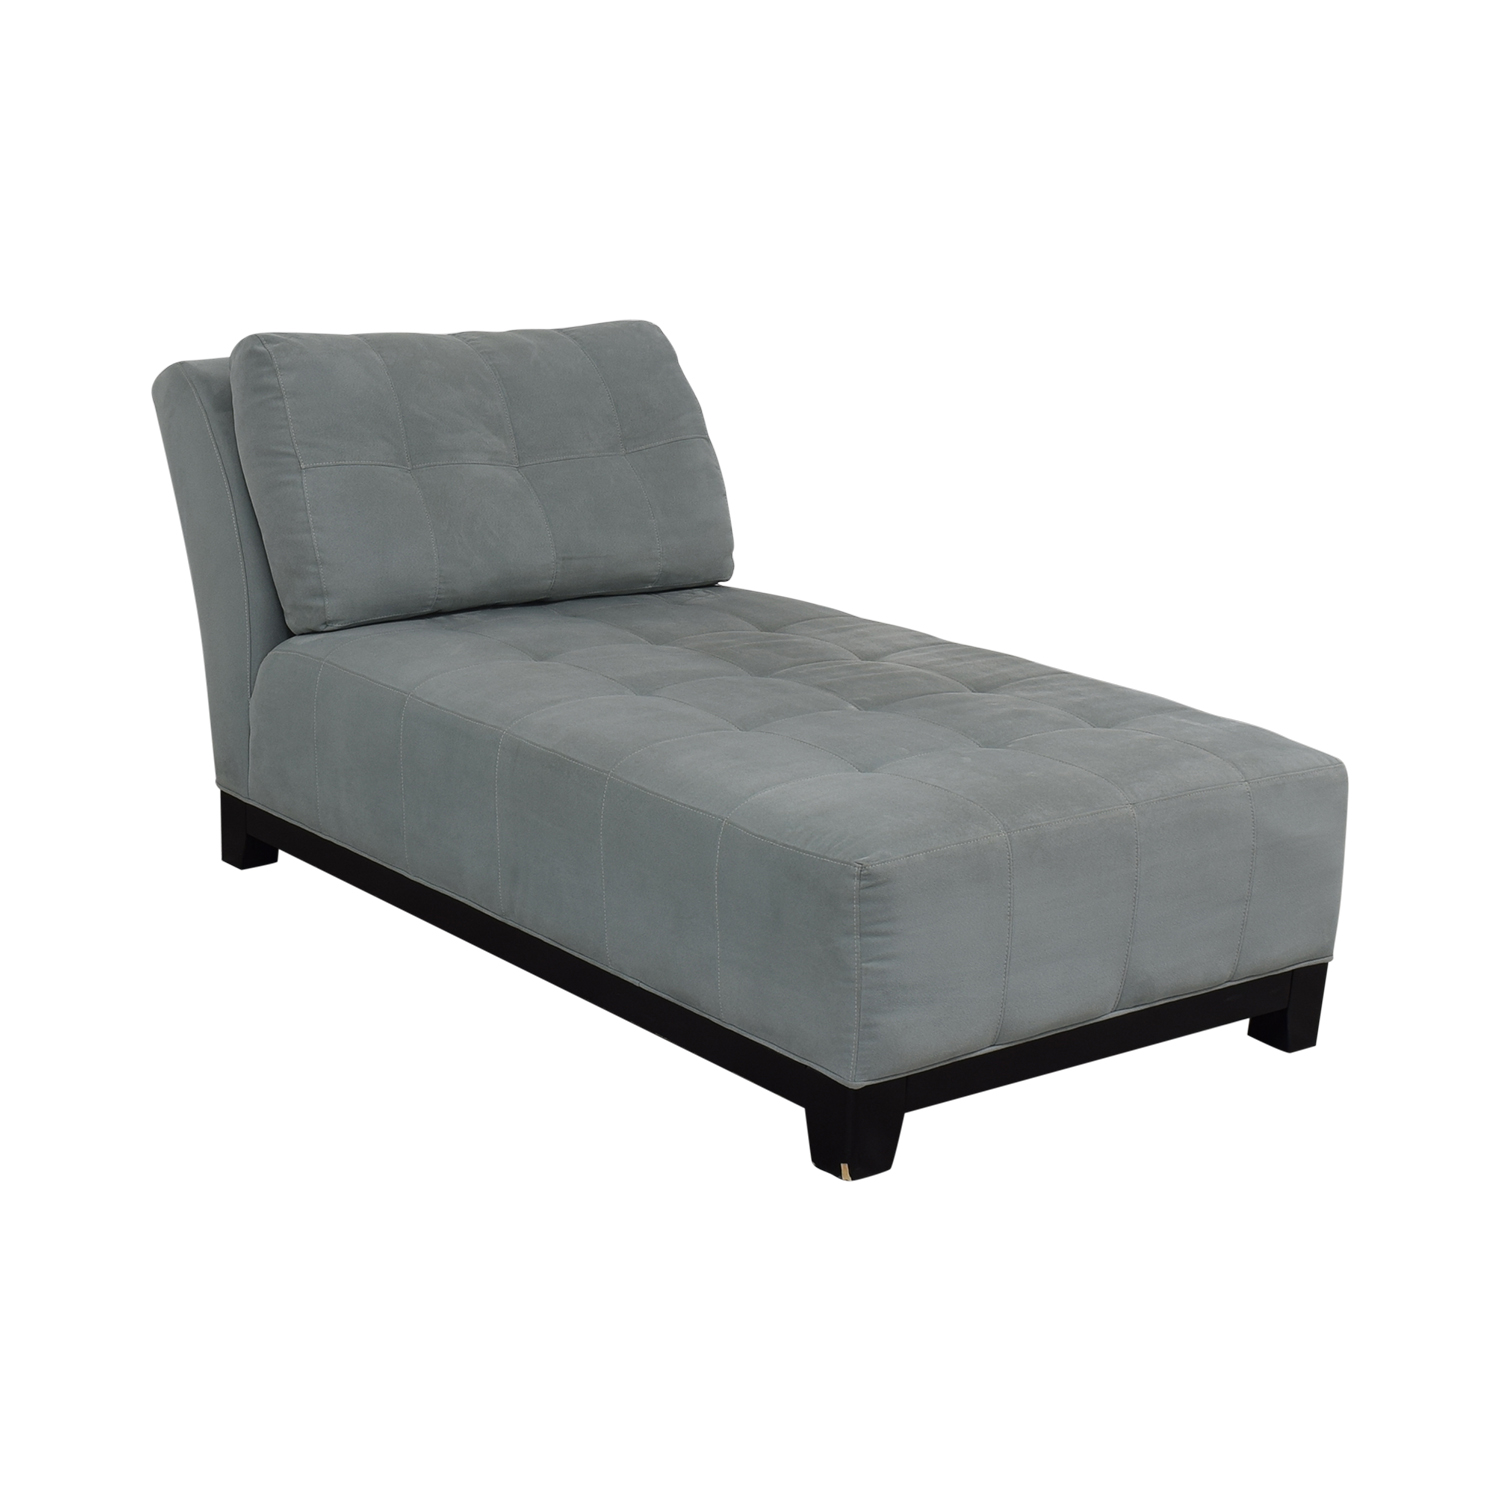 buy HM Richards Furniture Chaise Lounge HM Richards Furniture